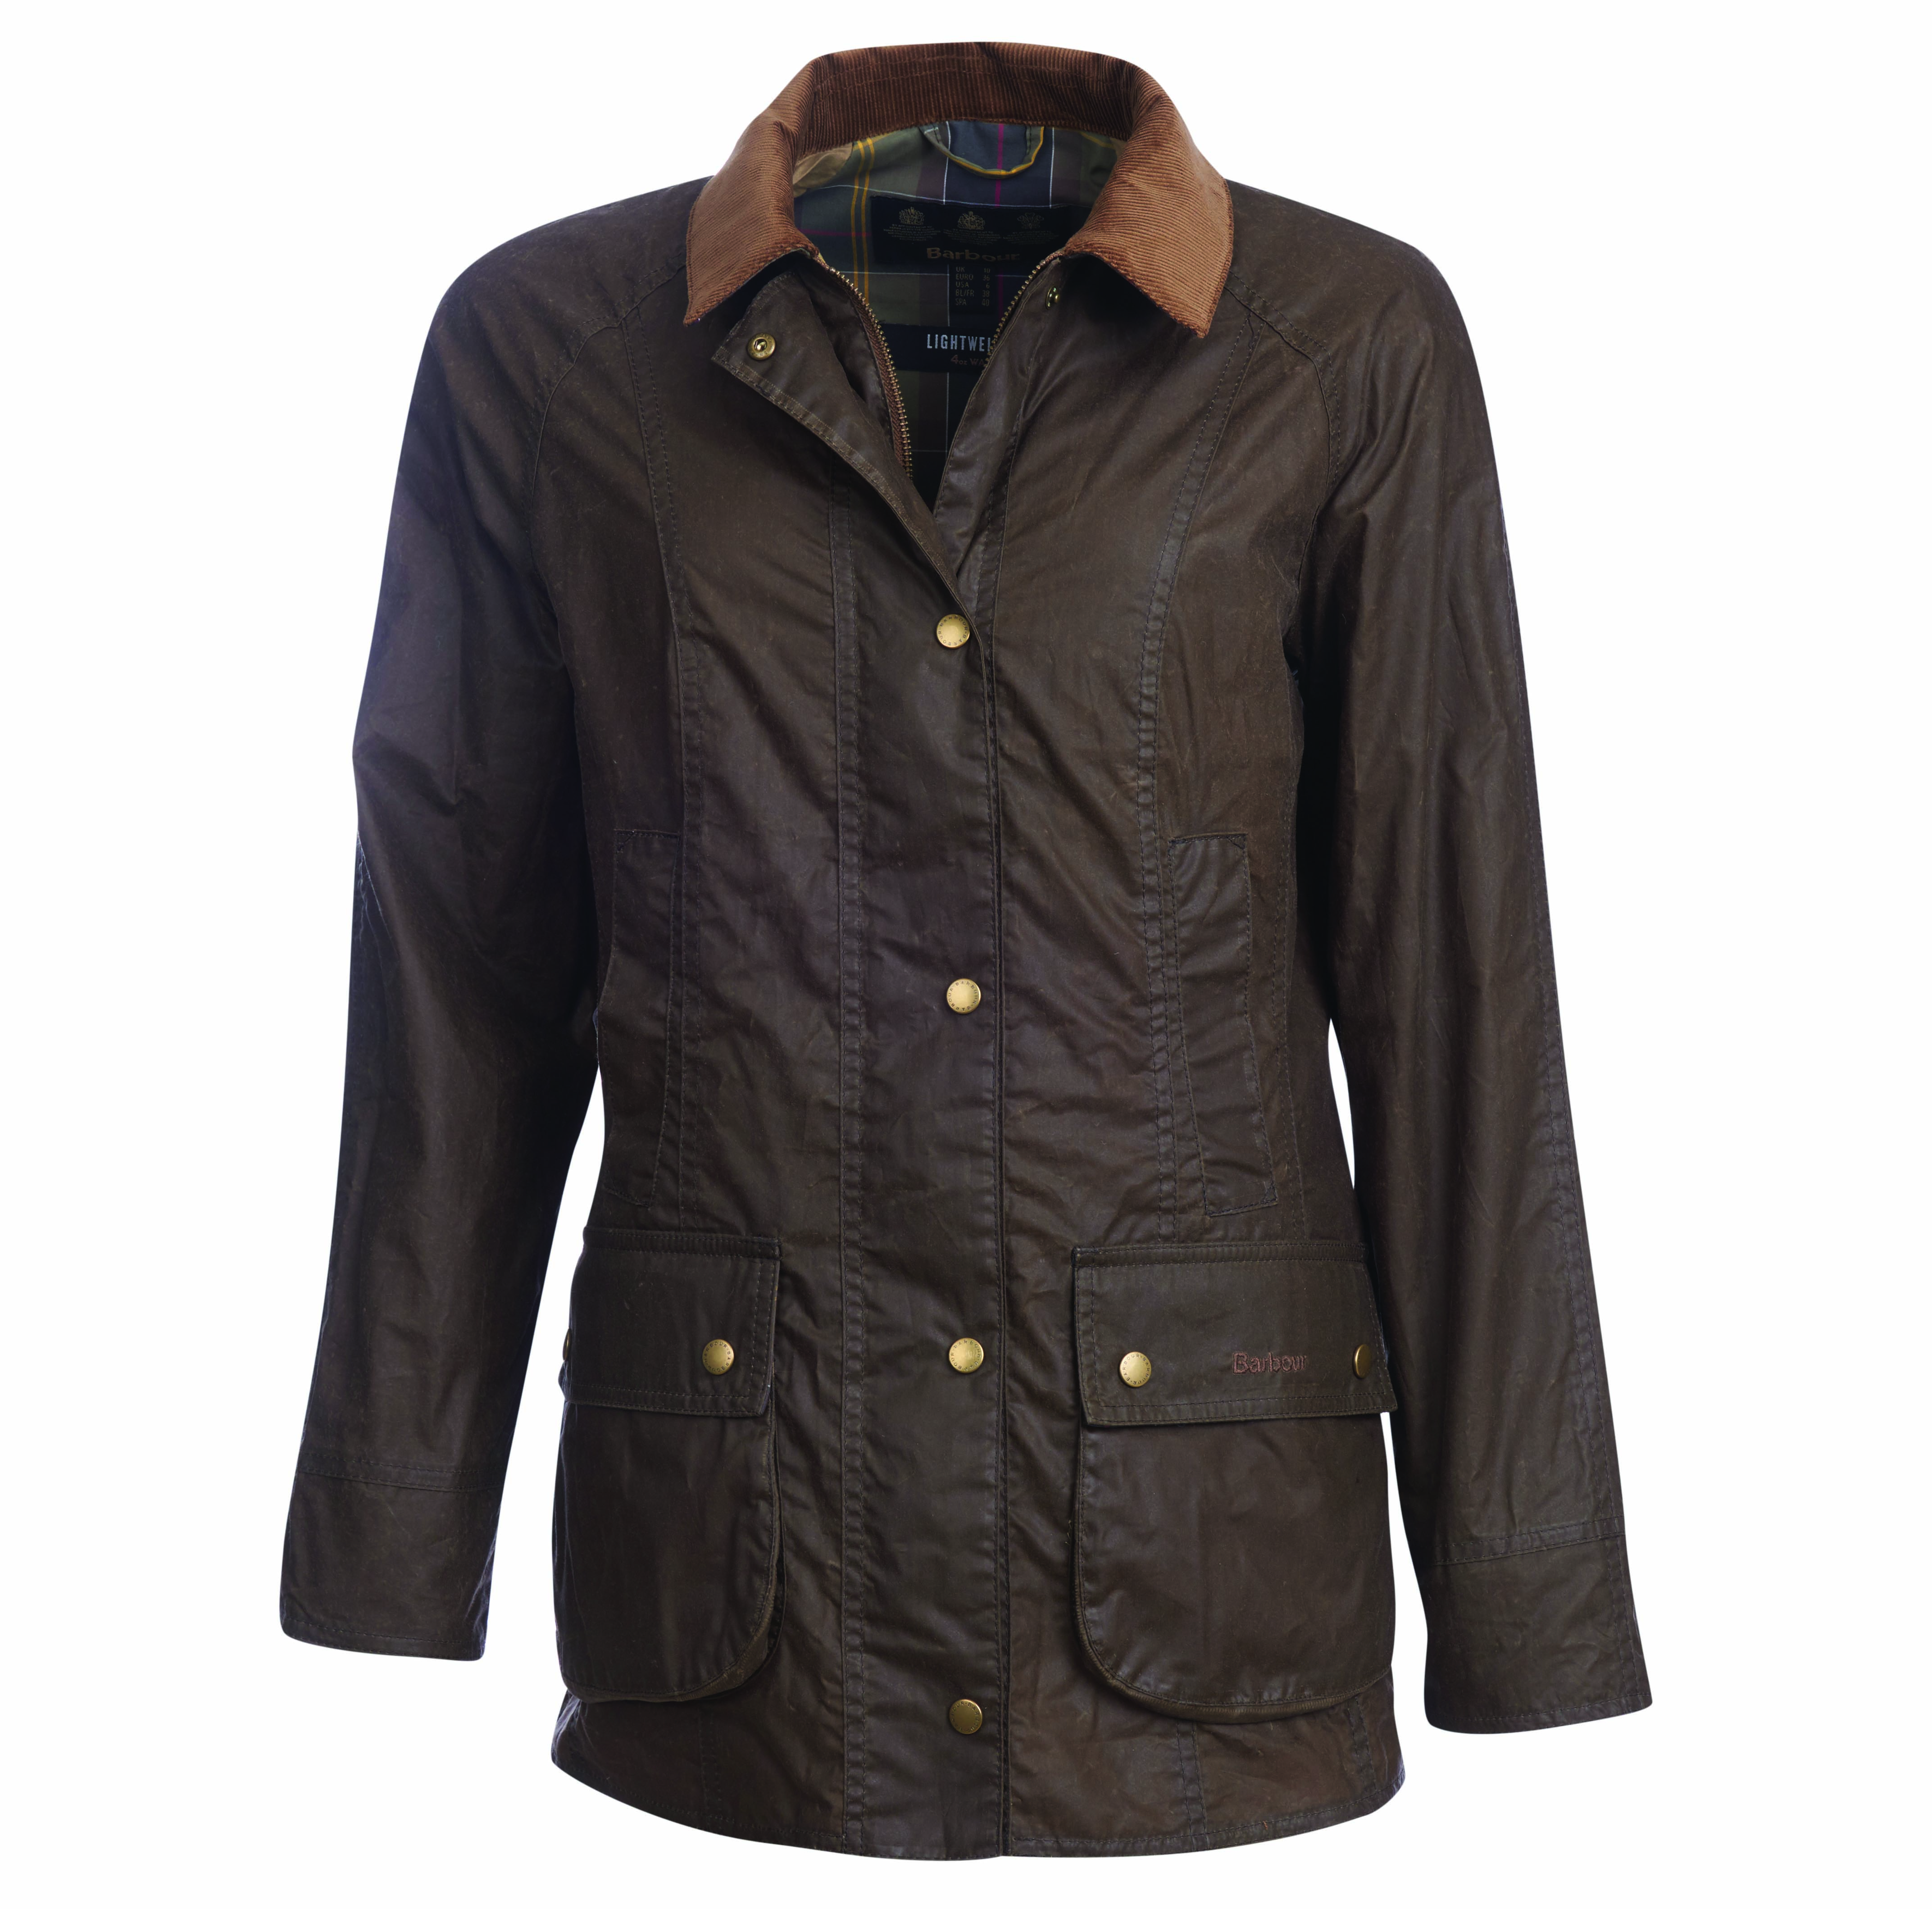 Barbour Barbour Lightweight Beadnell Wax Jacket Olive Regular Fit